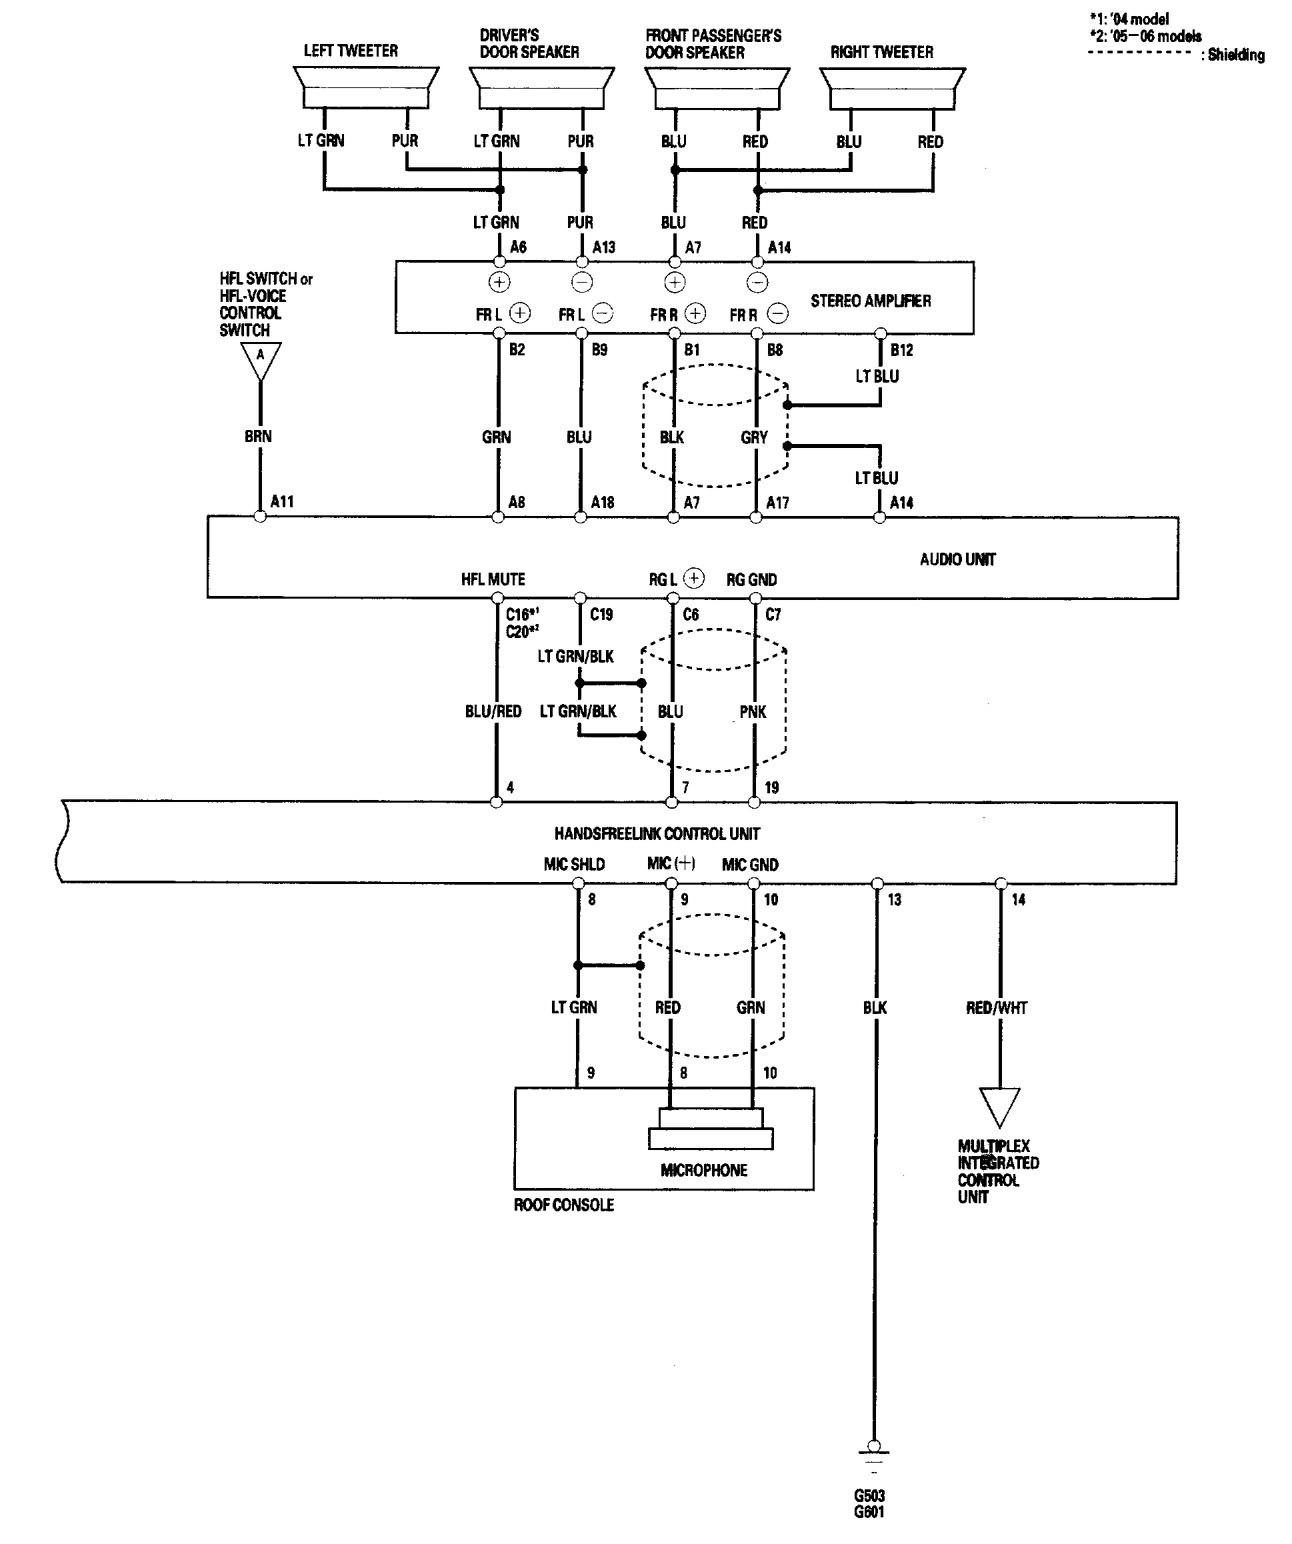 2005 acura tl speaker wiring diagram bennett trim tab pump electrical auto parts catalog and